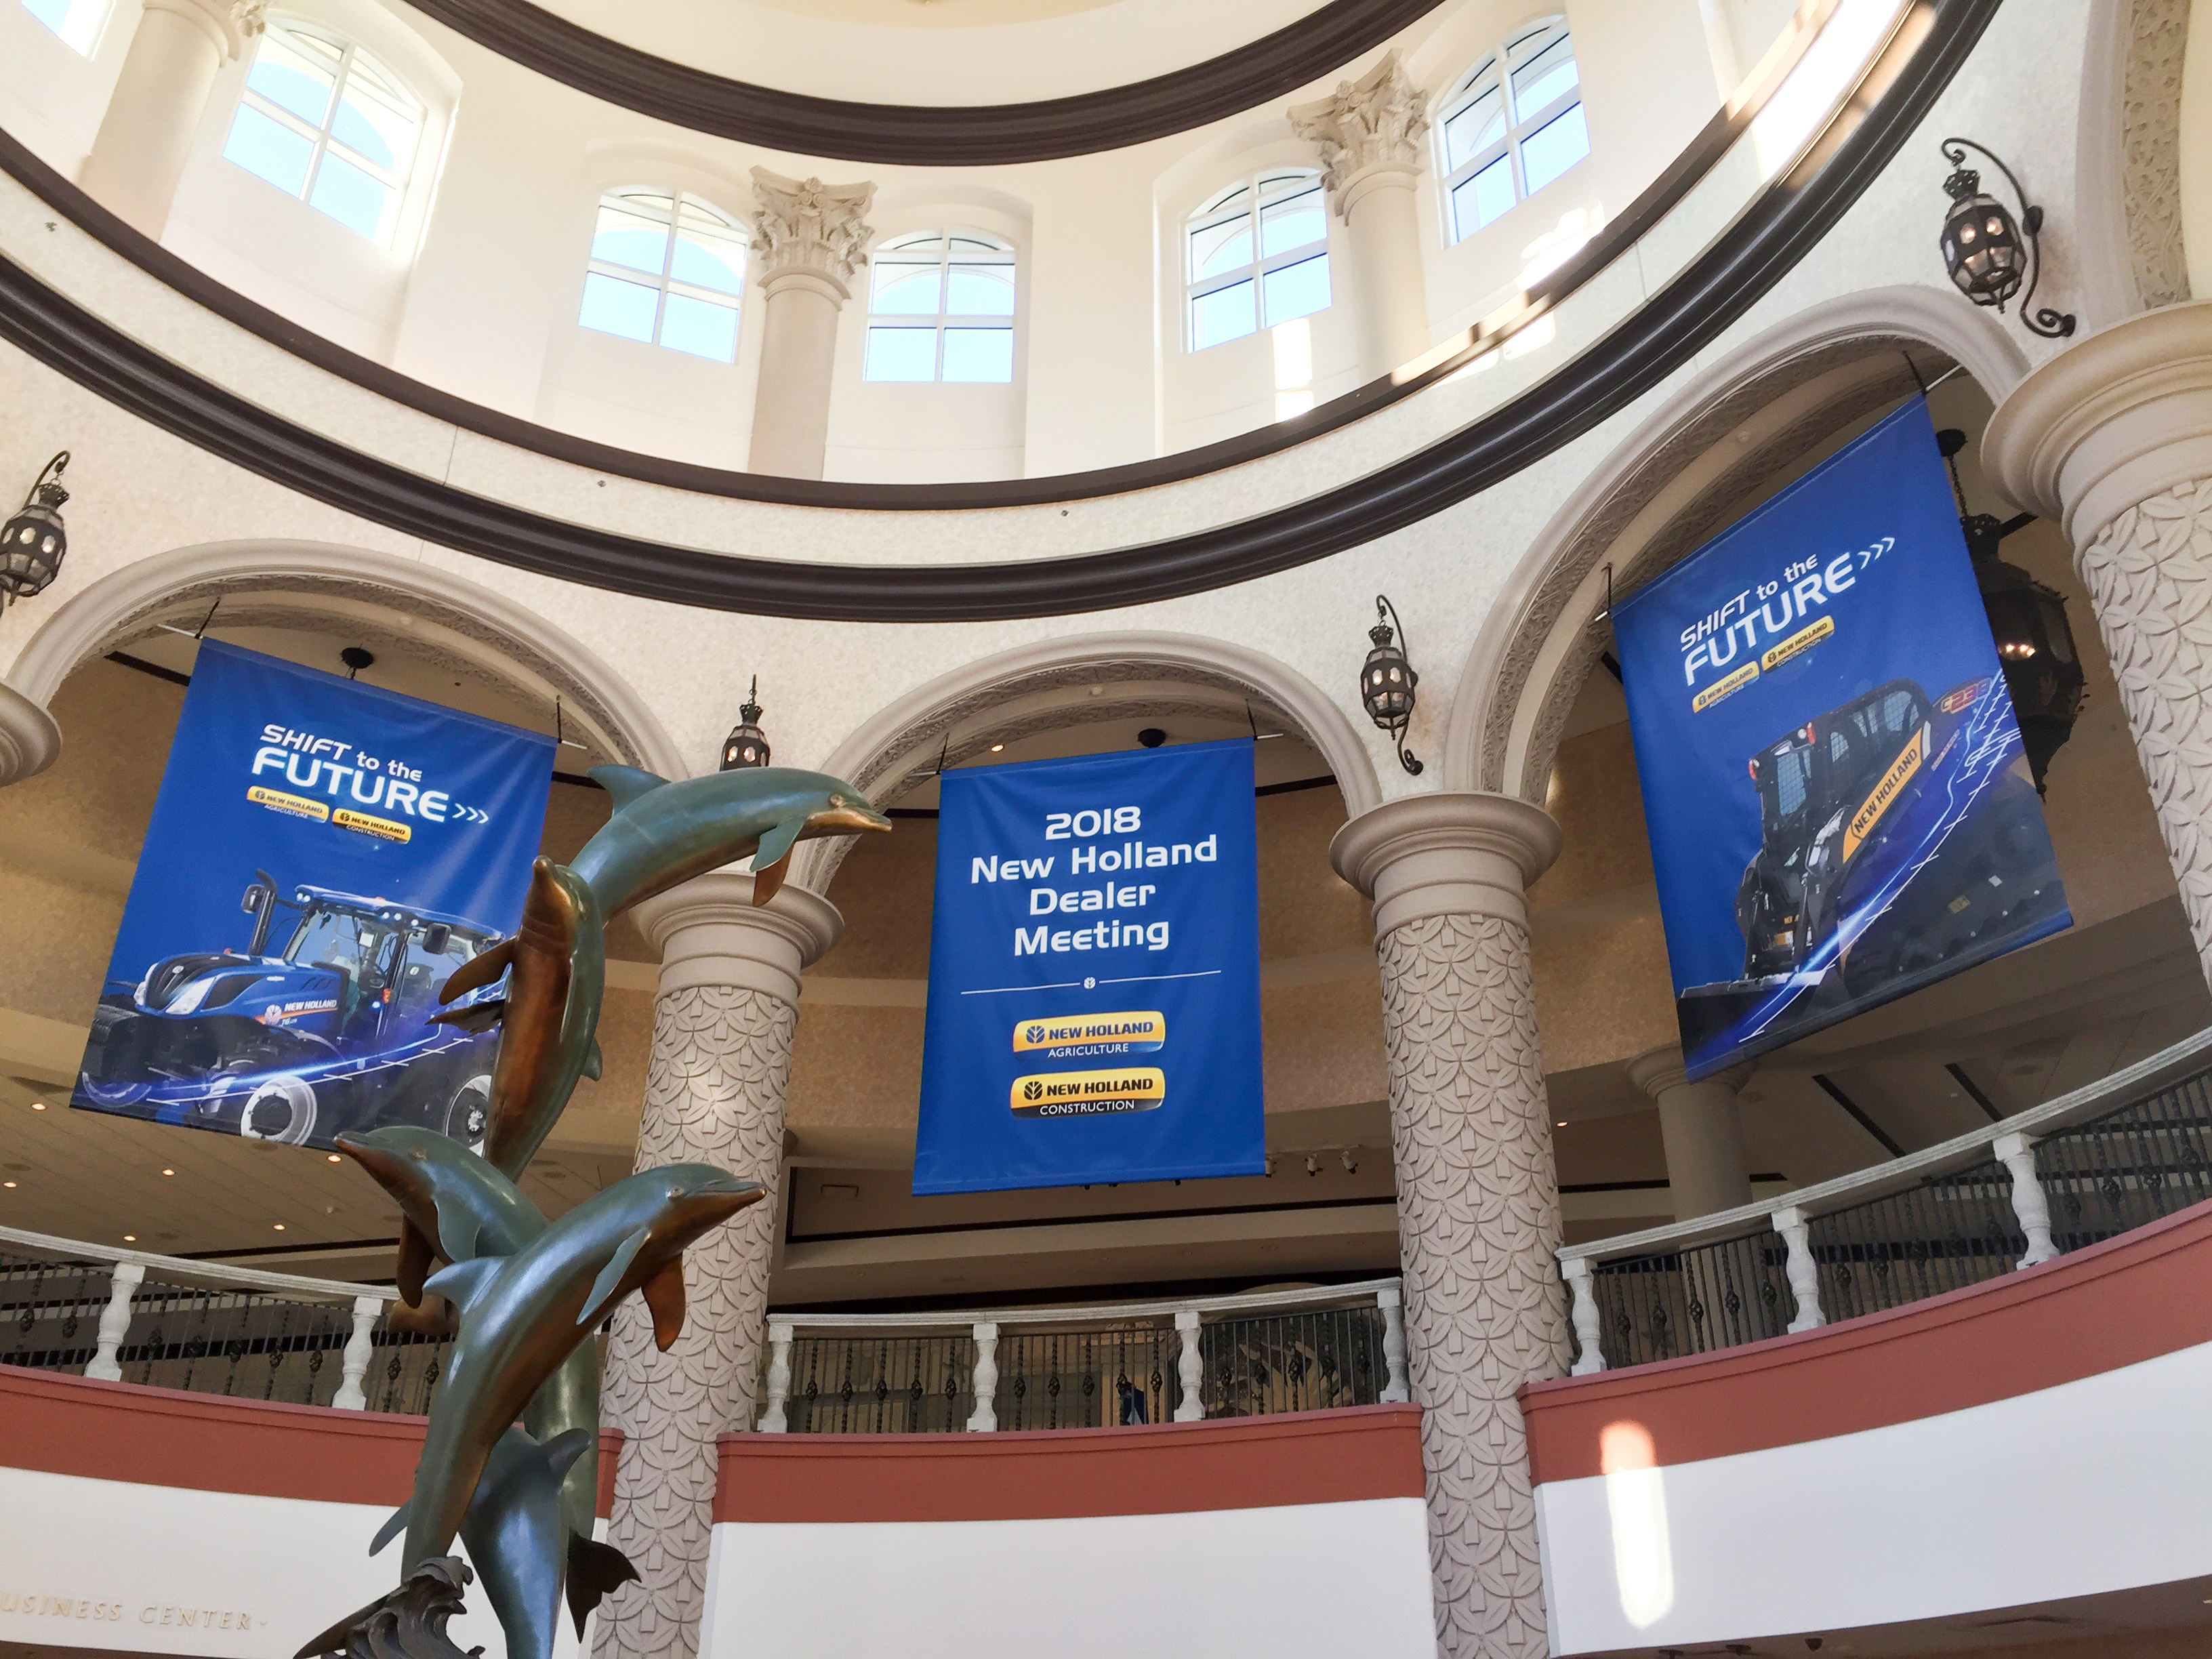 Fountain Archway Banners